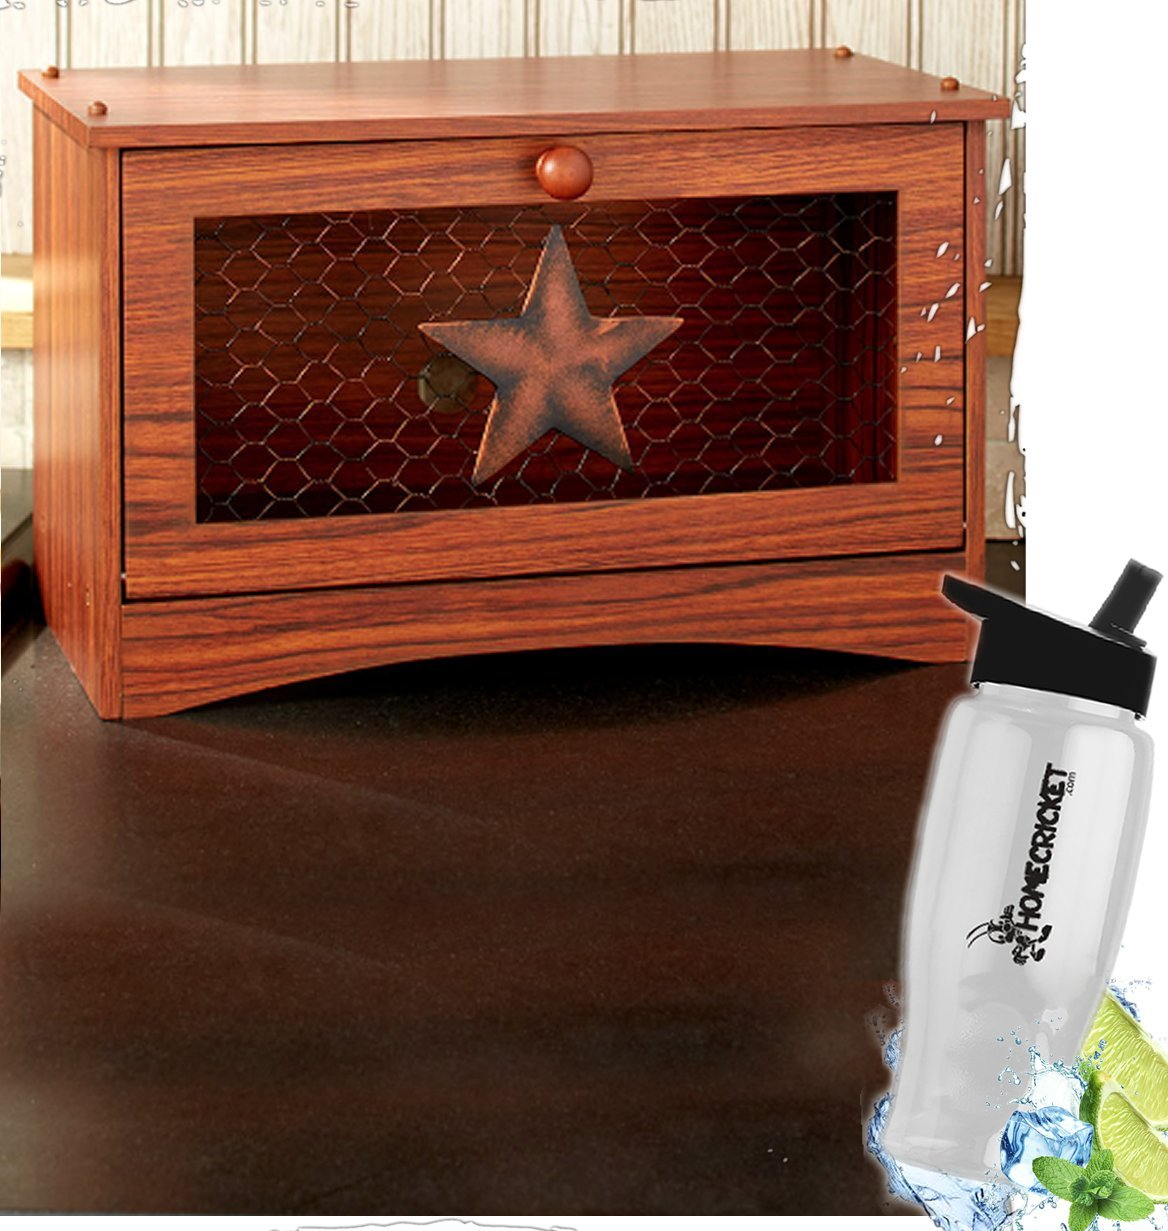 Gift Included- Farmhouse Country Kitchen Star Rustic Countertop Essentials + FREE Bonus Water Bottle by Homecricket (Bread Box)